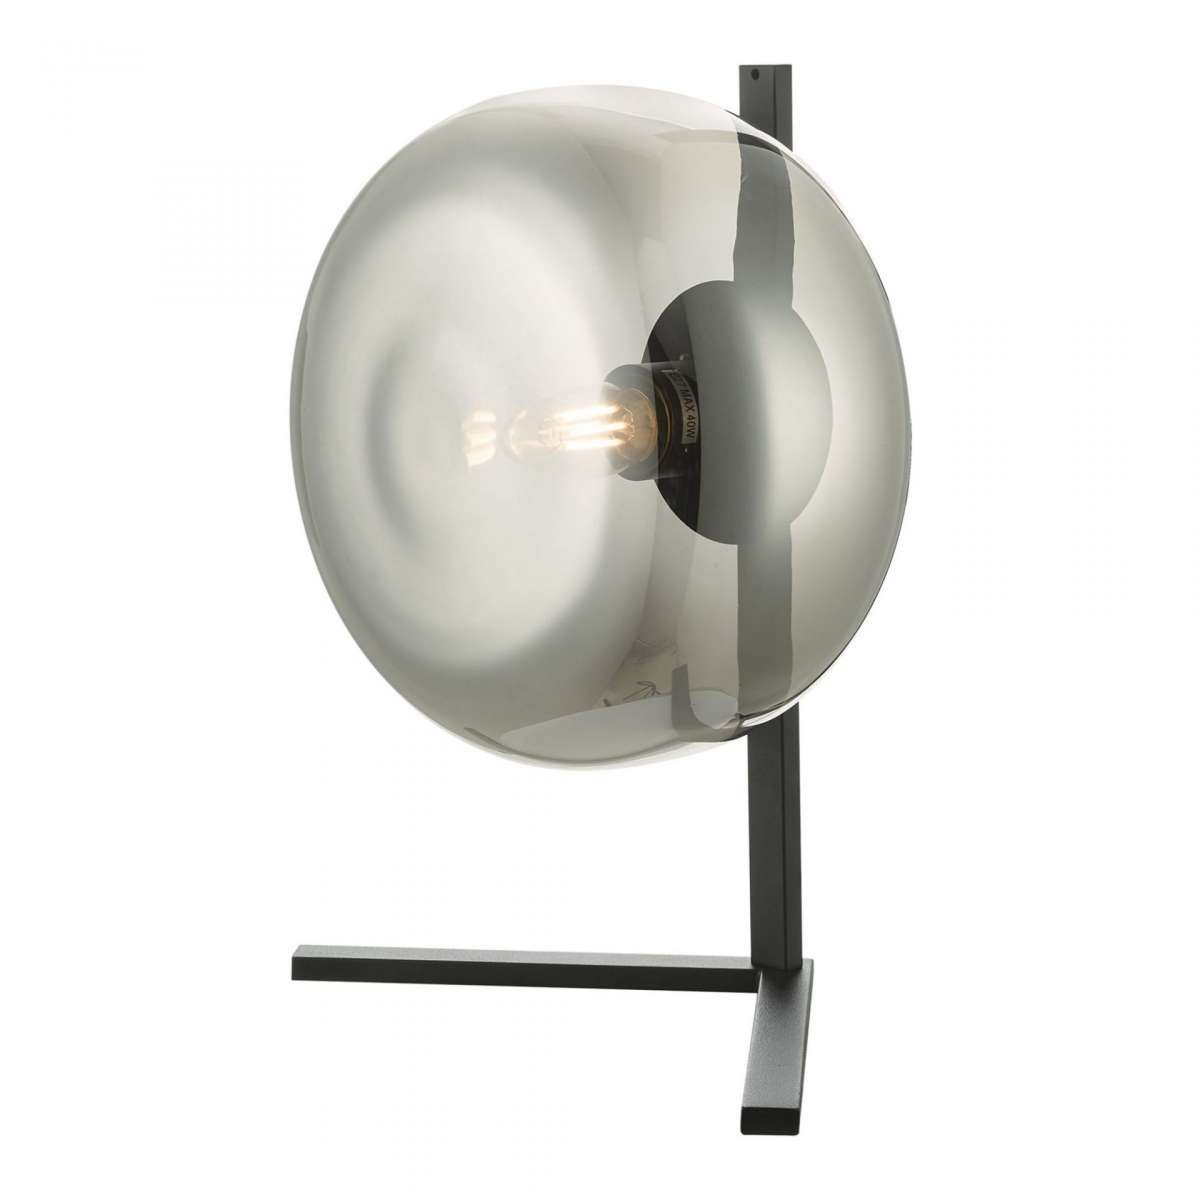 Erla Table Lamp Smoked Glass And Matt Black